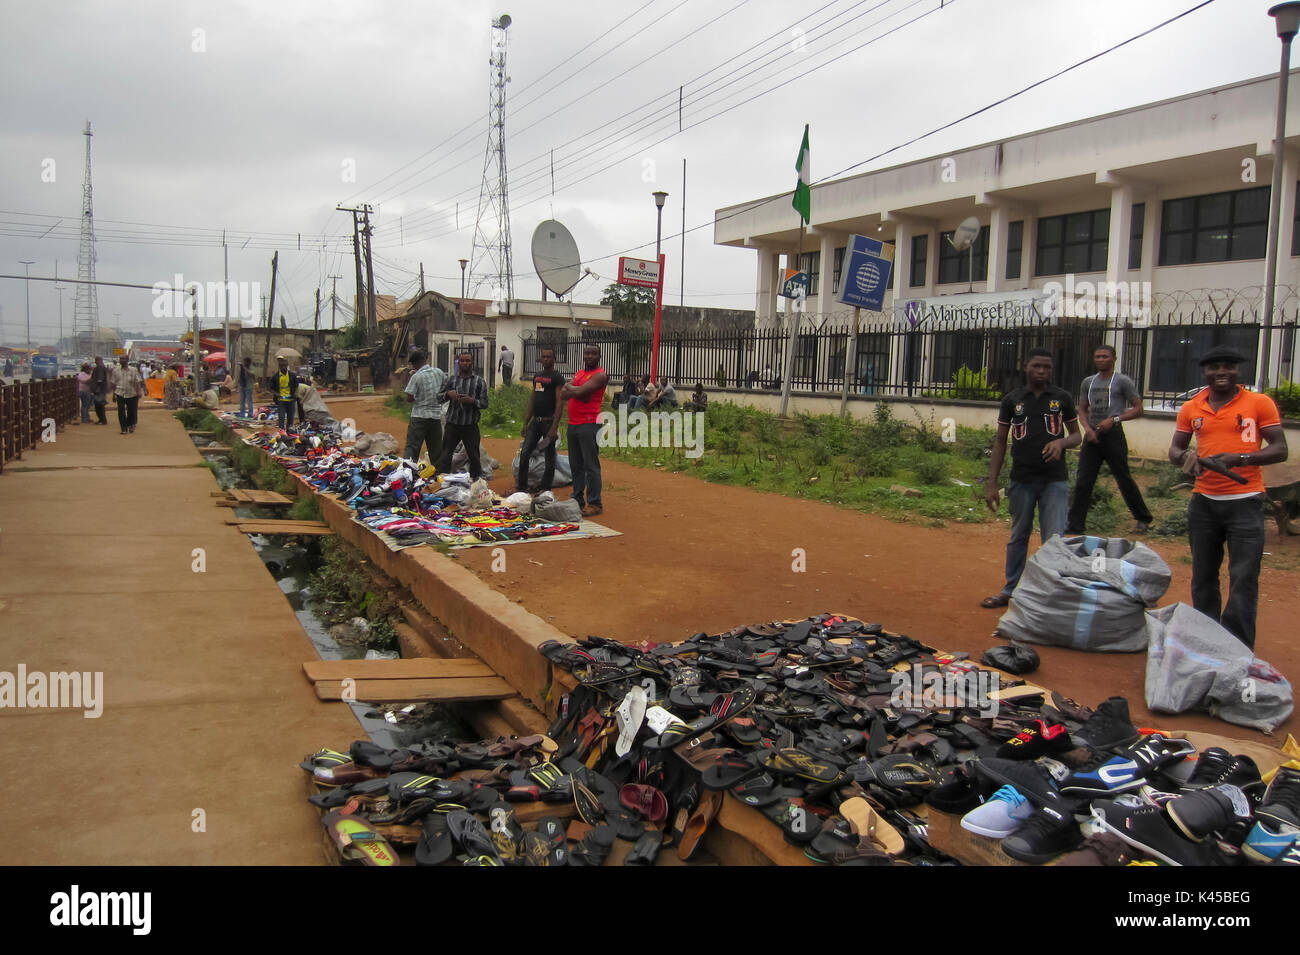 People selling shoes and sandals in the street in the city of Akure, a big conurbation in Ondo State, Nigeria - Stock Image